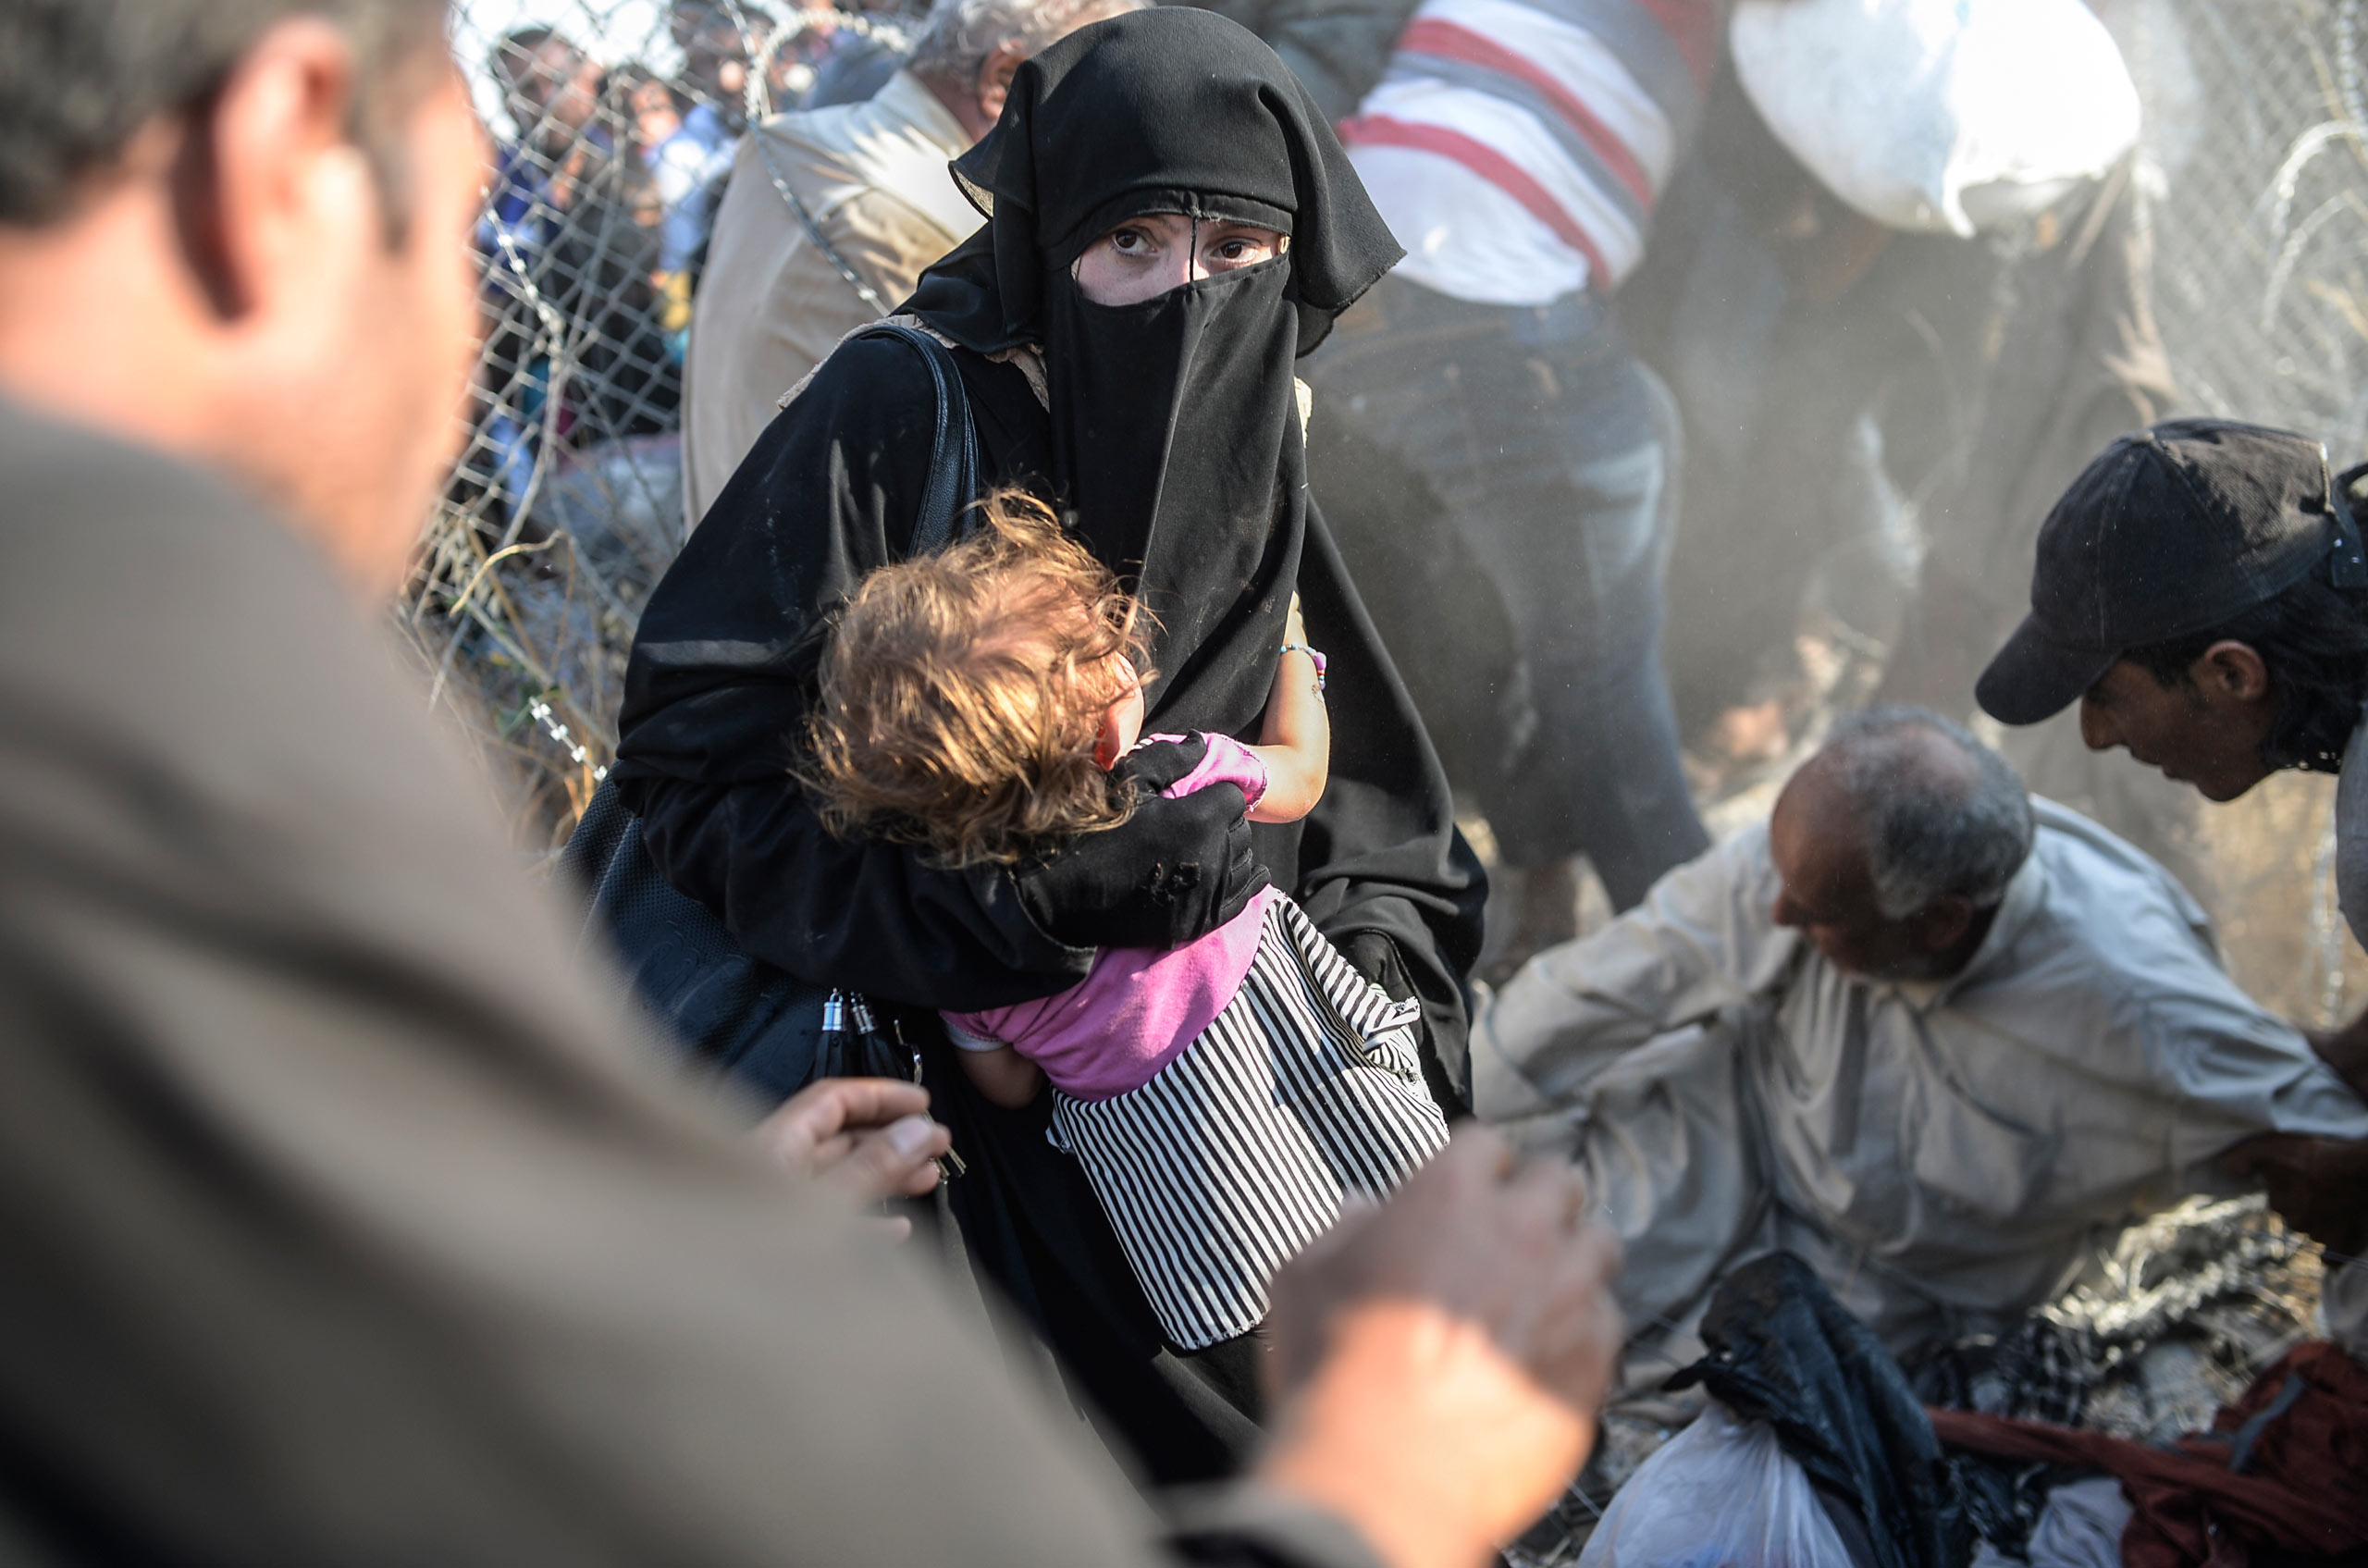 A Syrian woman holds her child as they pass the wire fence at the Turkish border near the Syrian town of Tell Abyad and Akçakale, in the Şanlıurfa province. June 14, 2015.